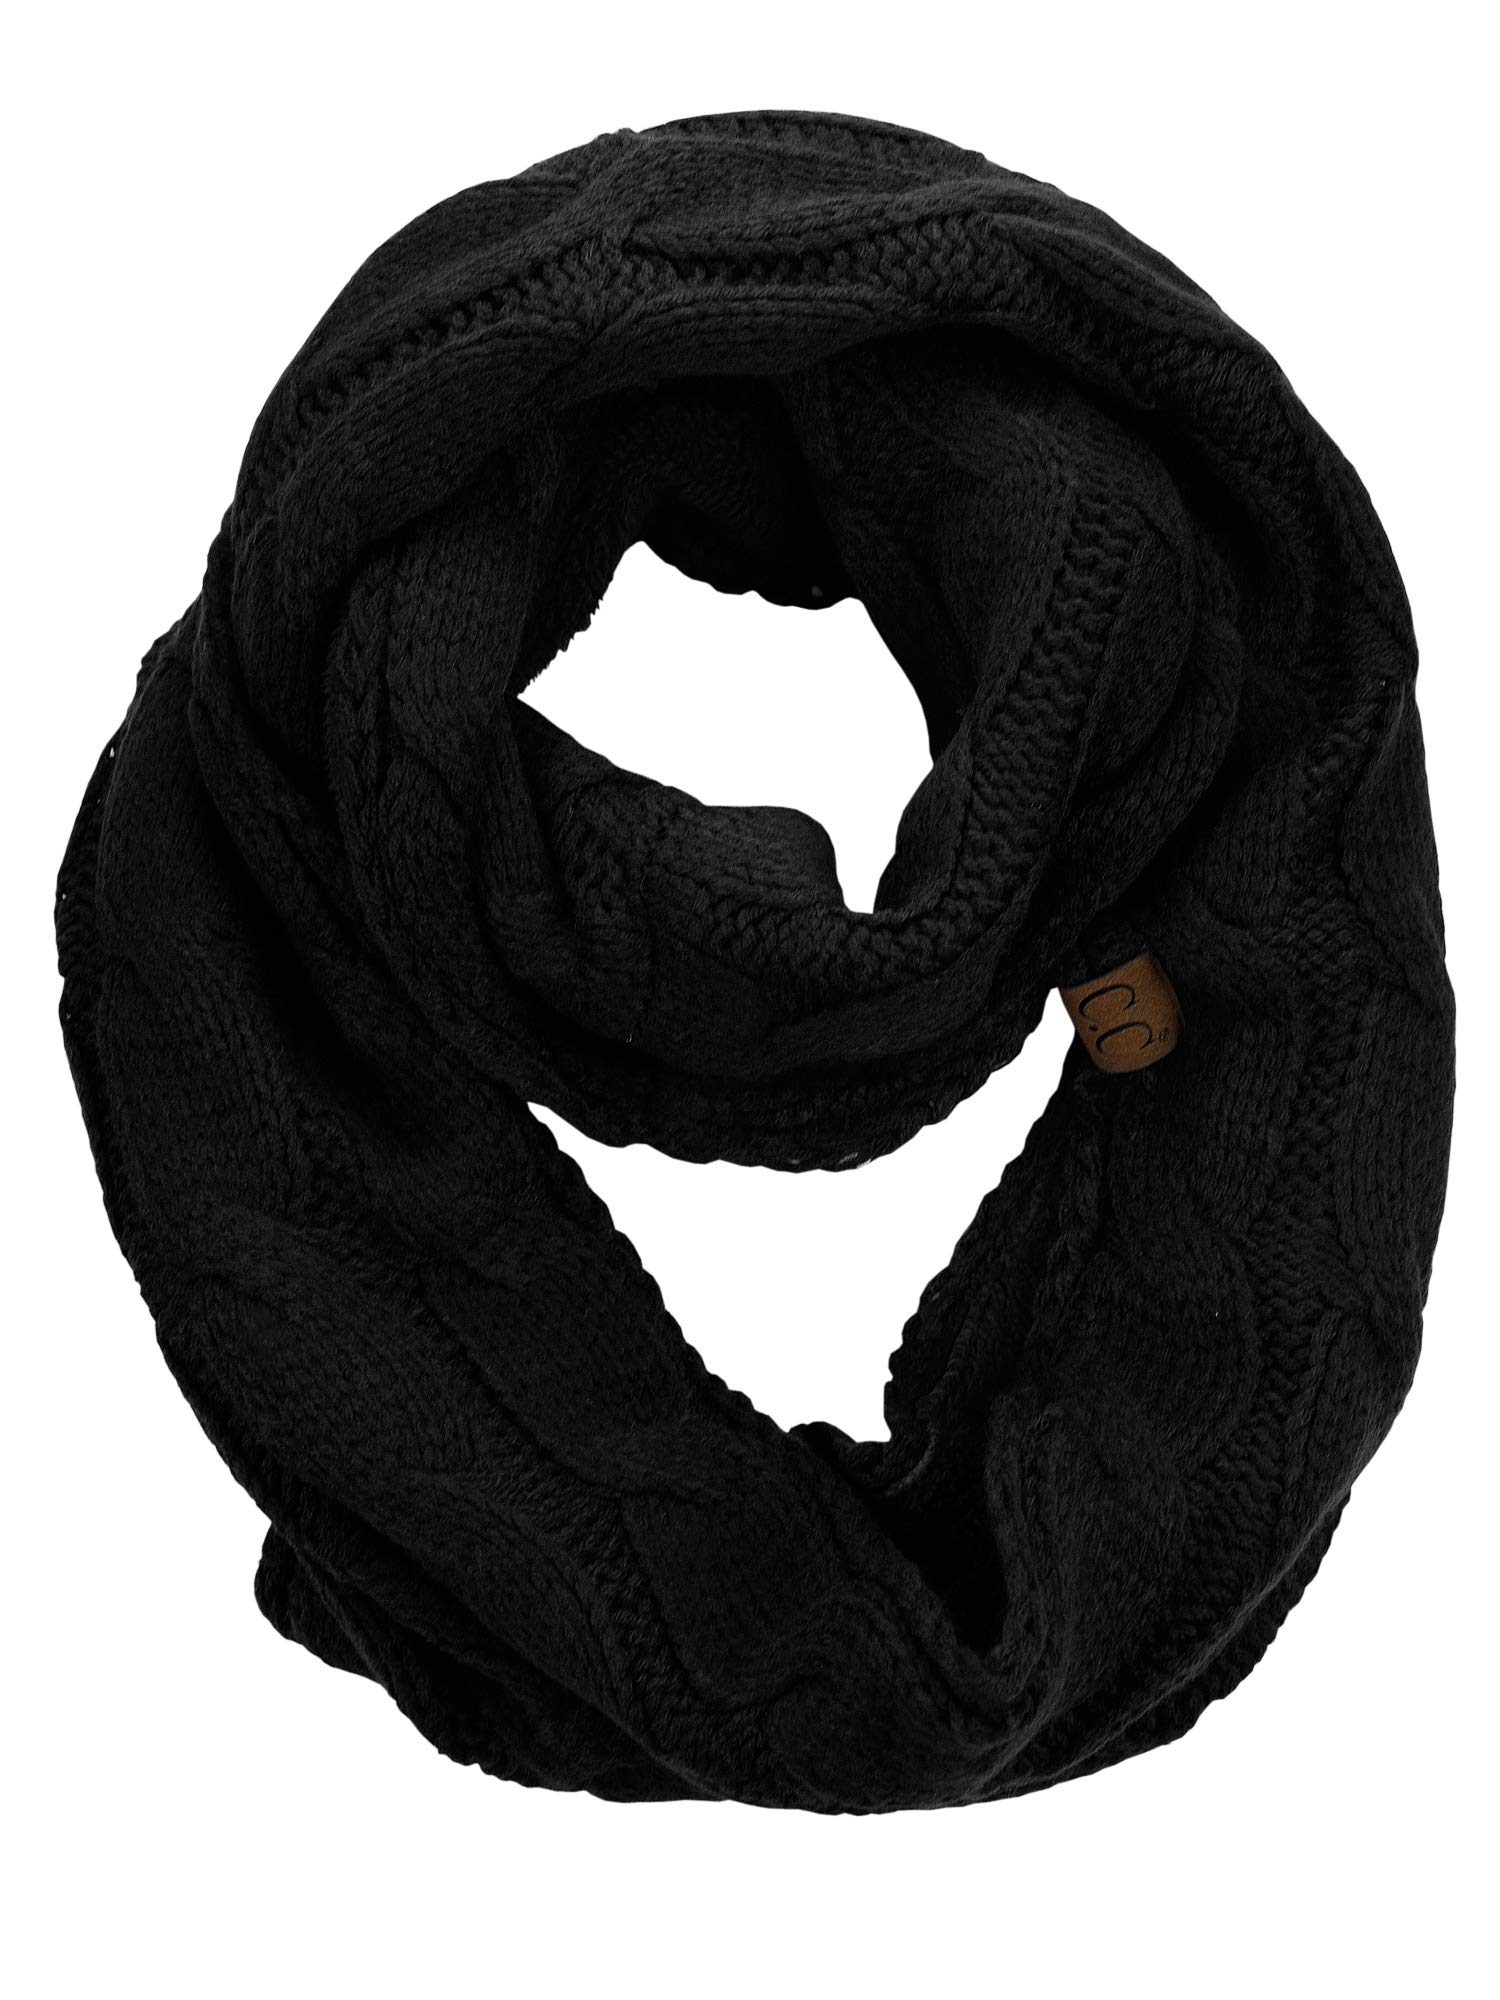 C.C Women's Winter Cable Knit Sherpa Lined Warm Infinity Pullover Scarf